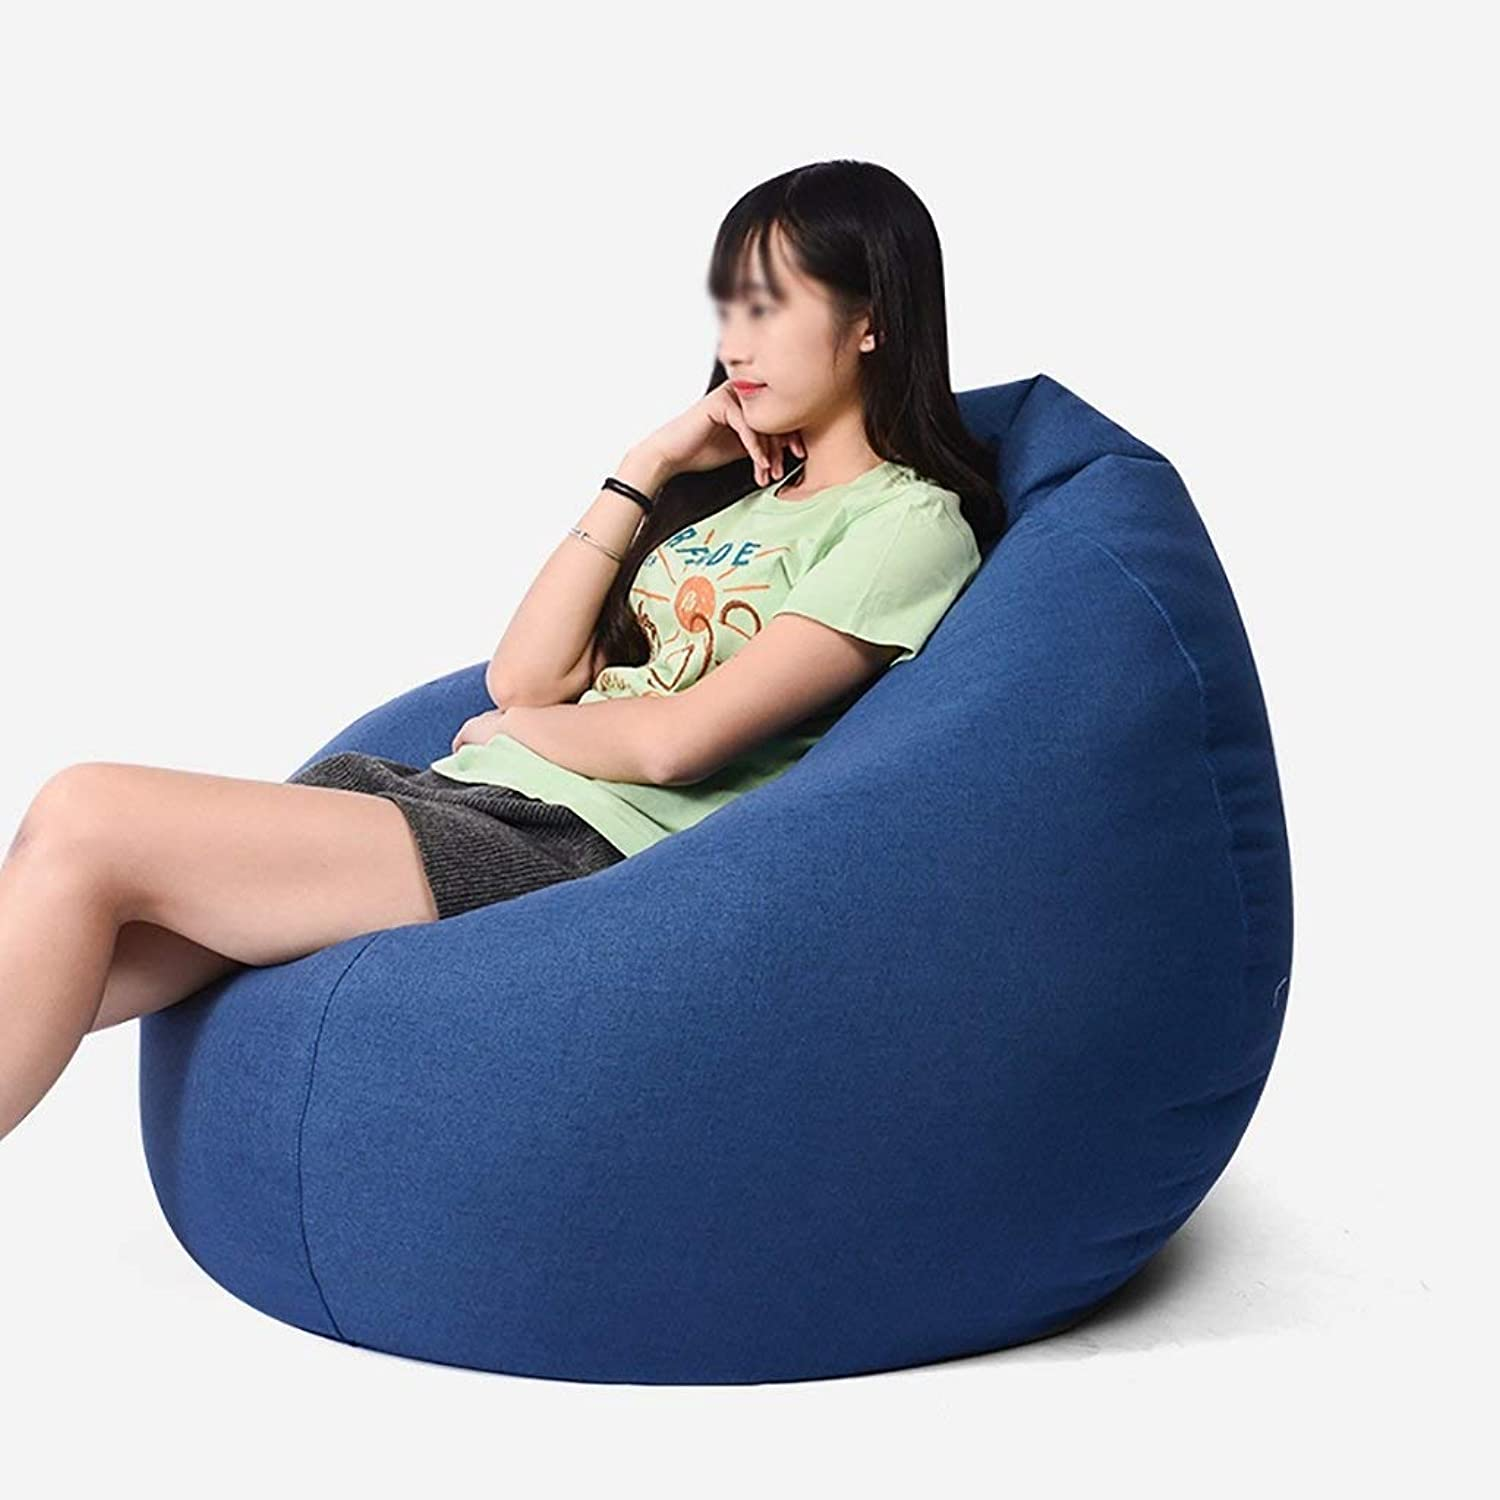 Solid color Bean Bag ChairIndoor Outdoor Lazy Sofa Adult Game Leisure Lounge Chair Soft Designer Chair Cushion degradable EPS Fill 90x110cm